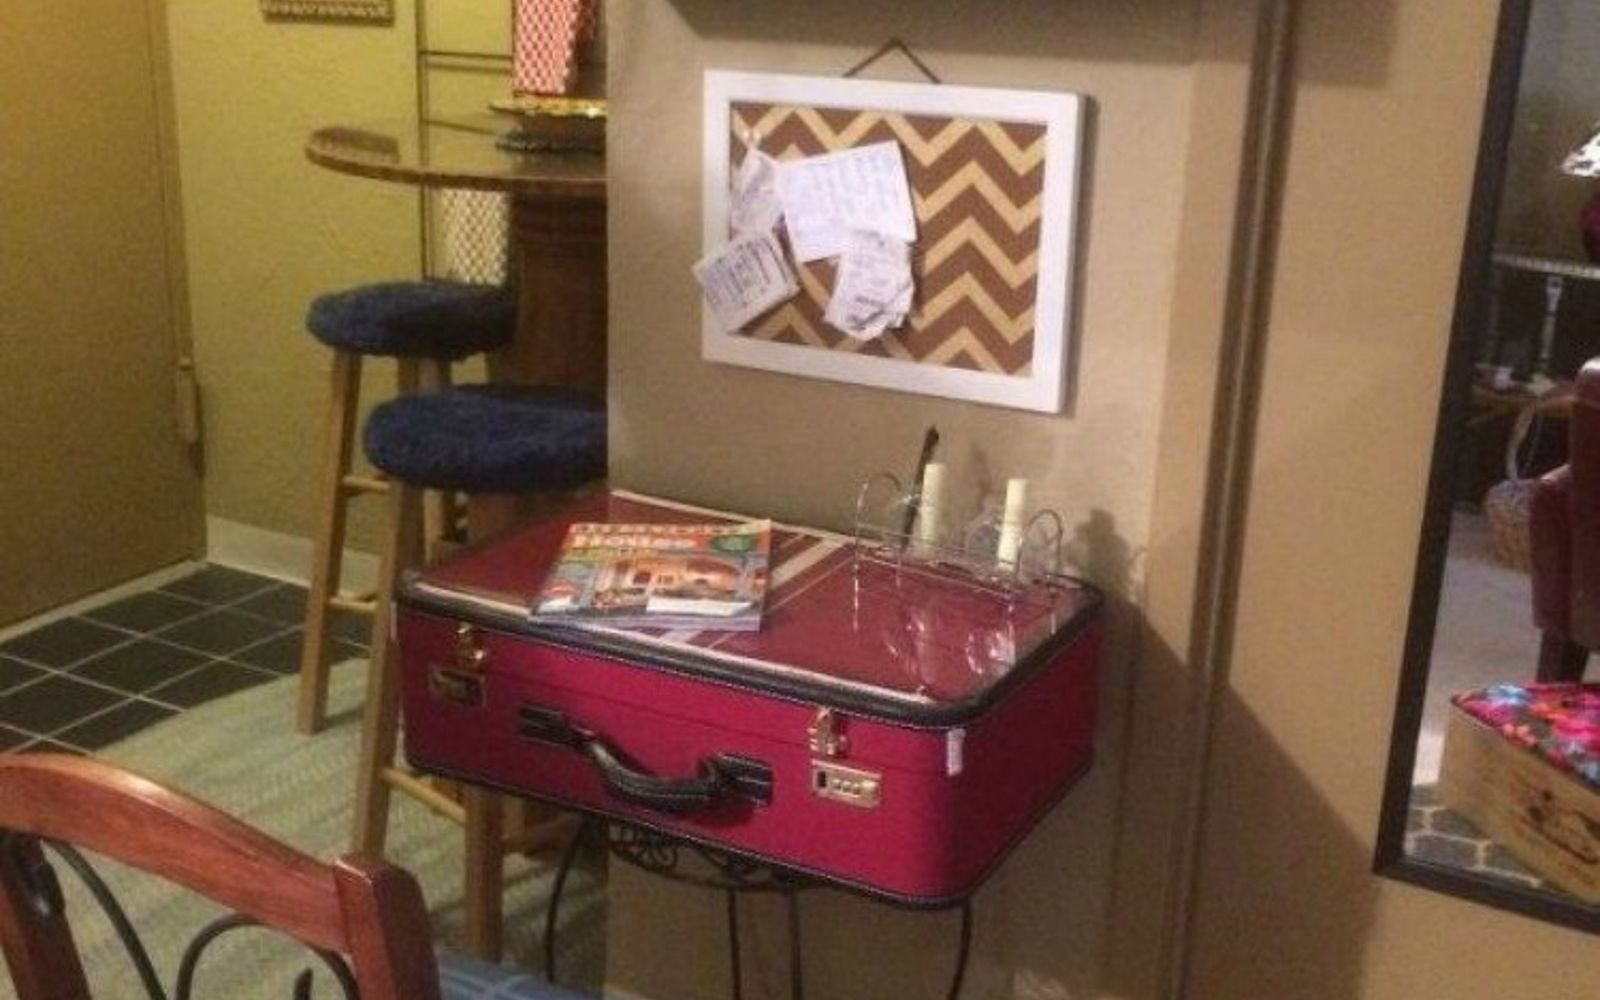 s don t throw out your old suitcase before you see these 15 clever ideas, Repurpose it into a chic desk